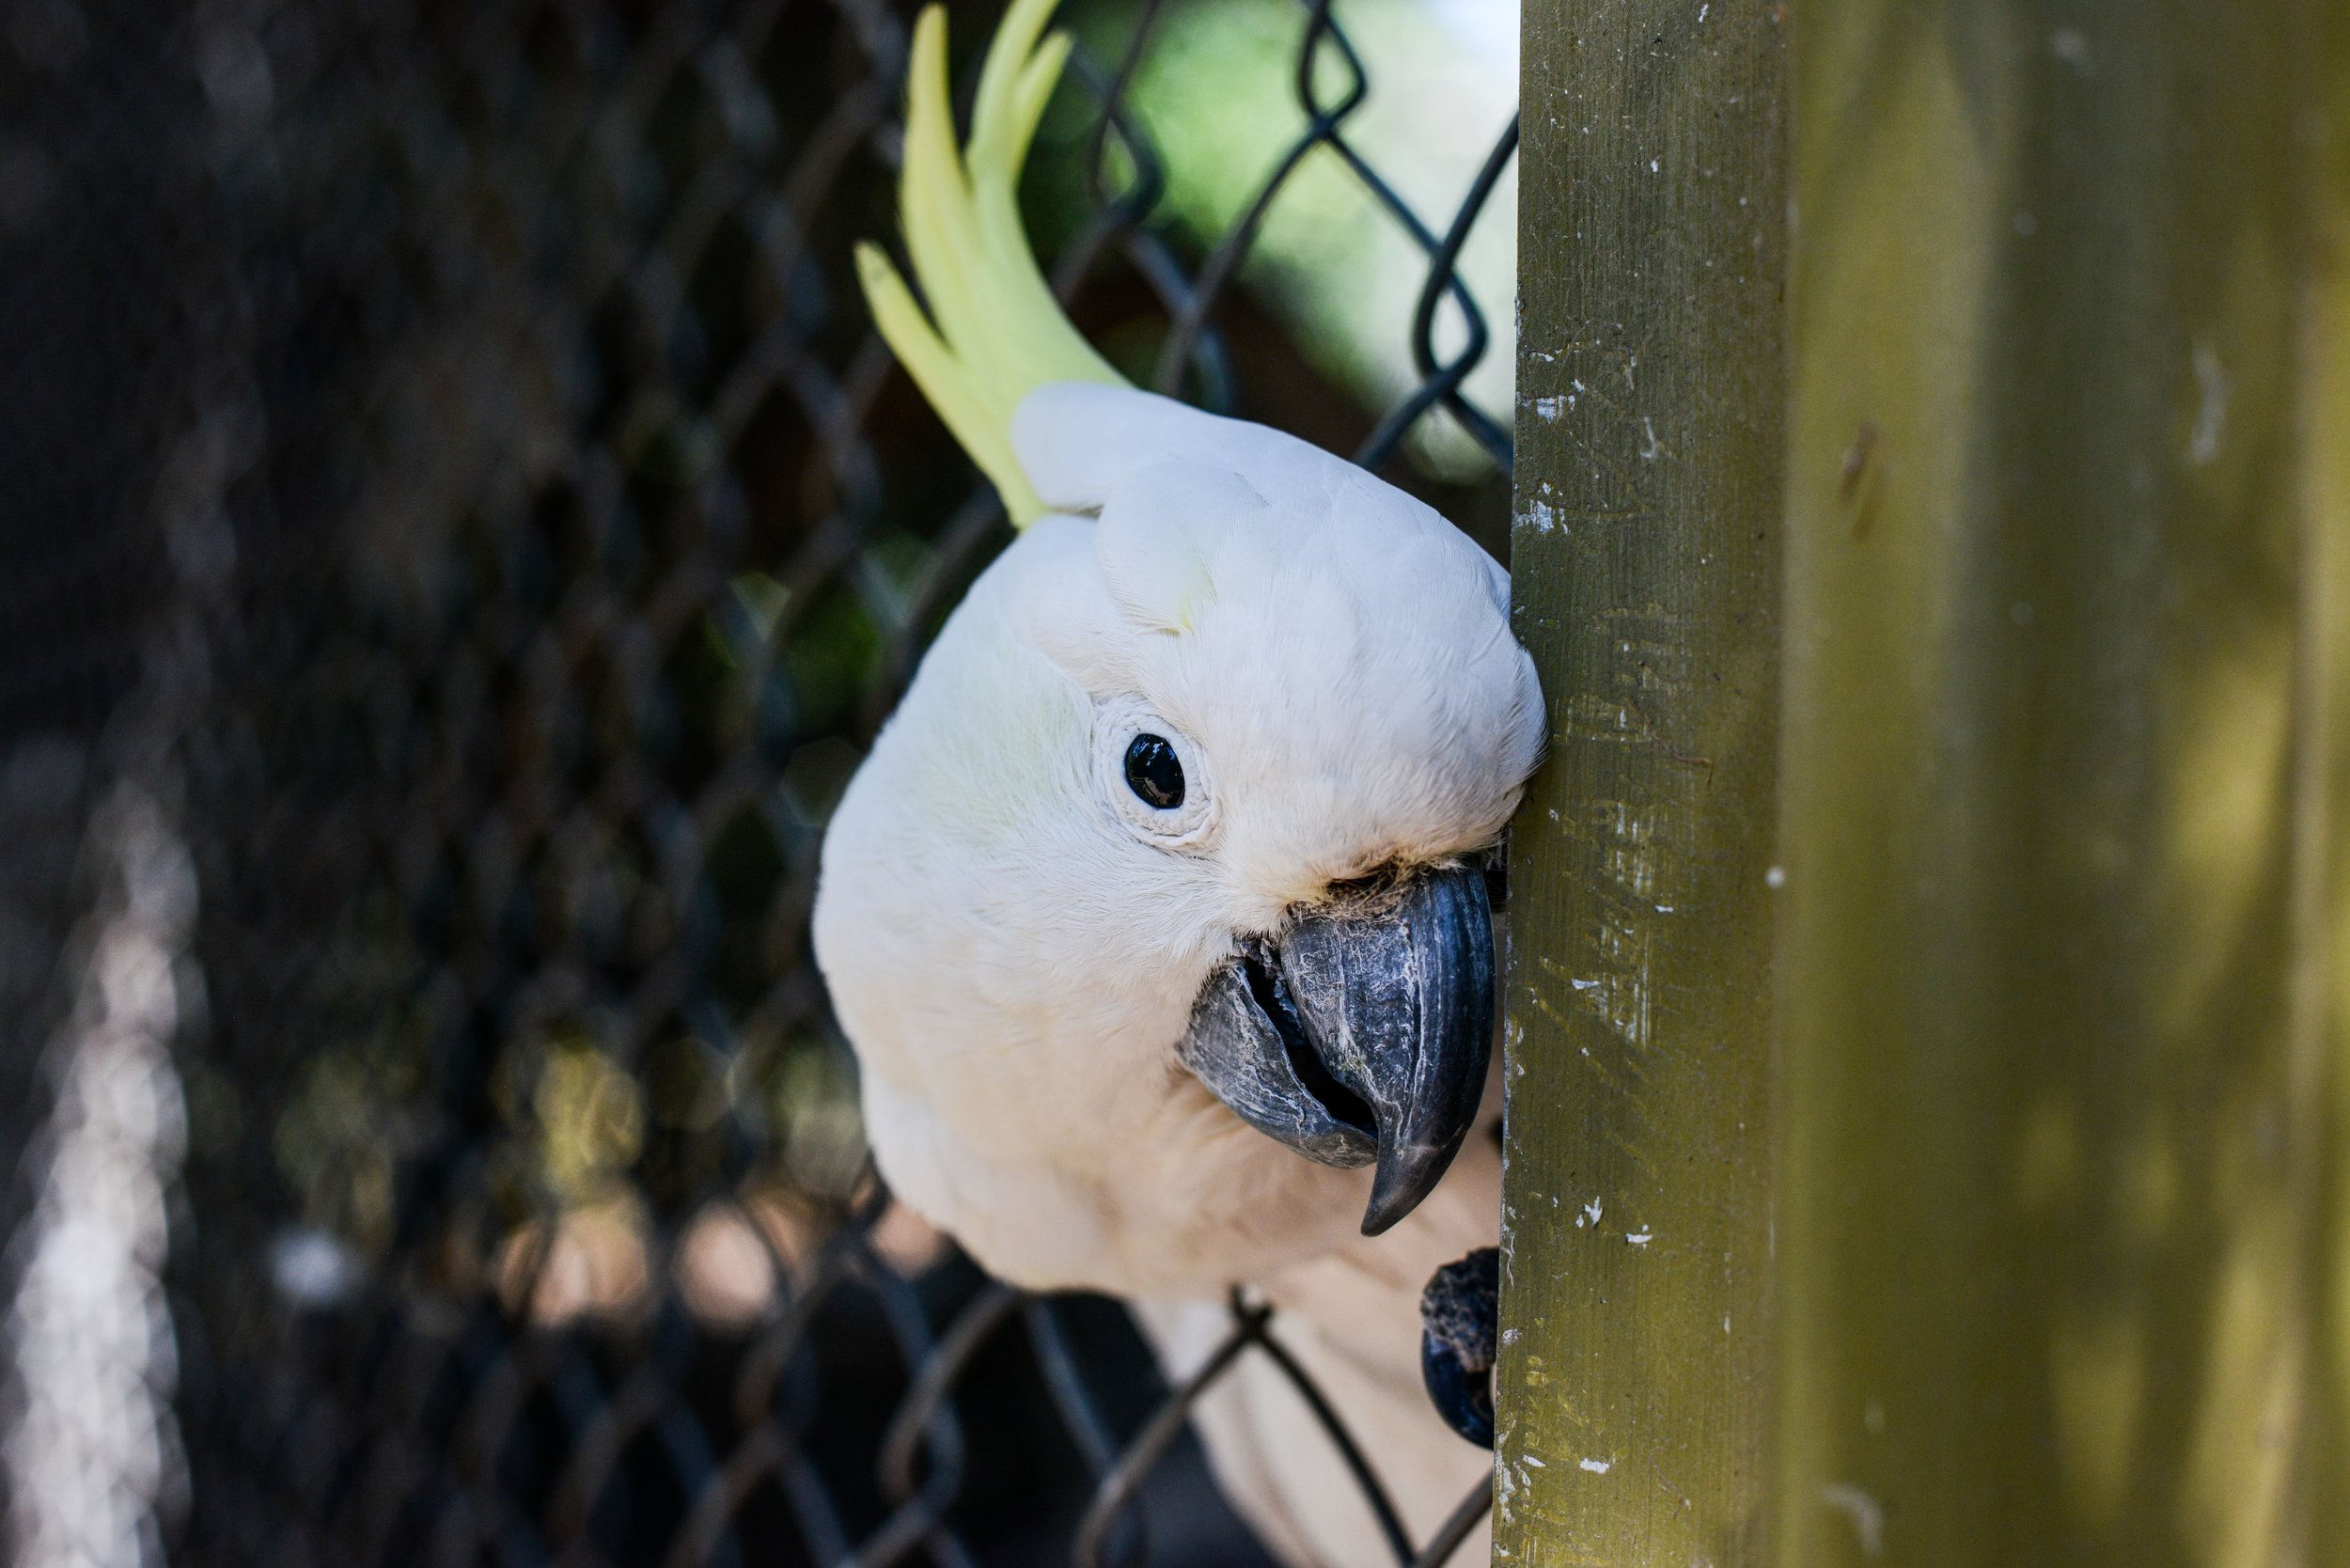 Cockatoo in a Zoo.jpg